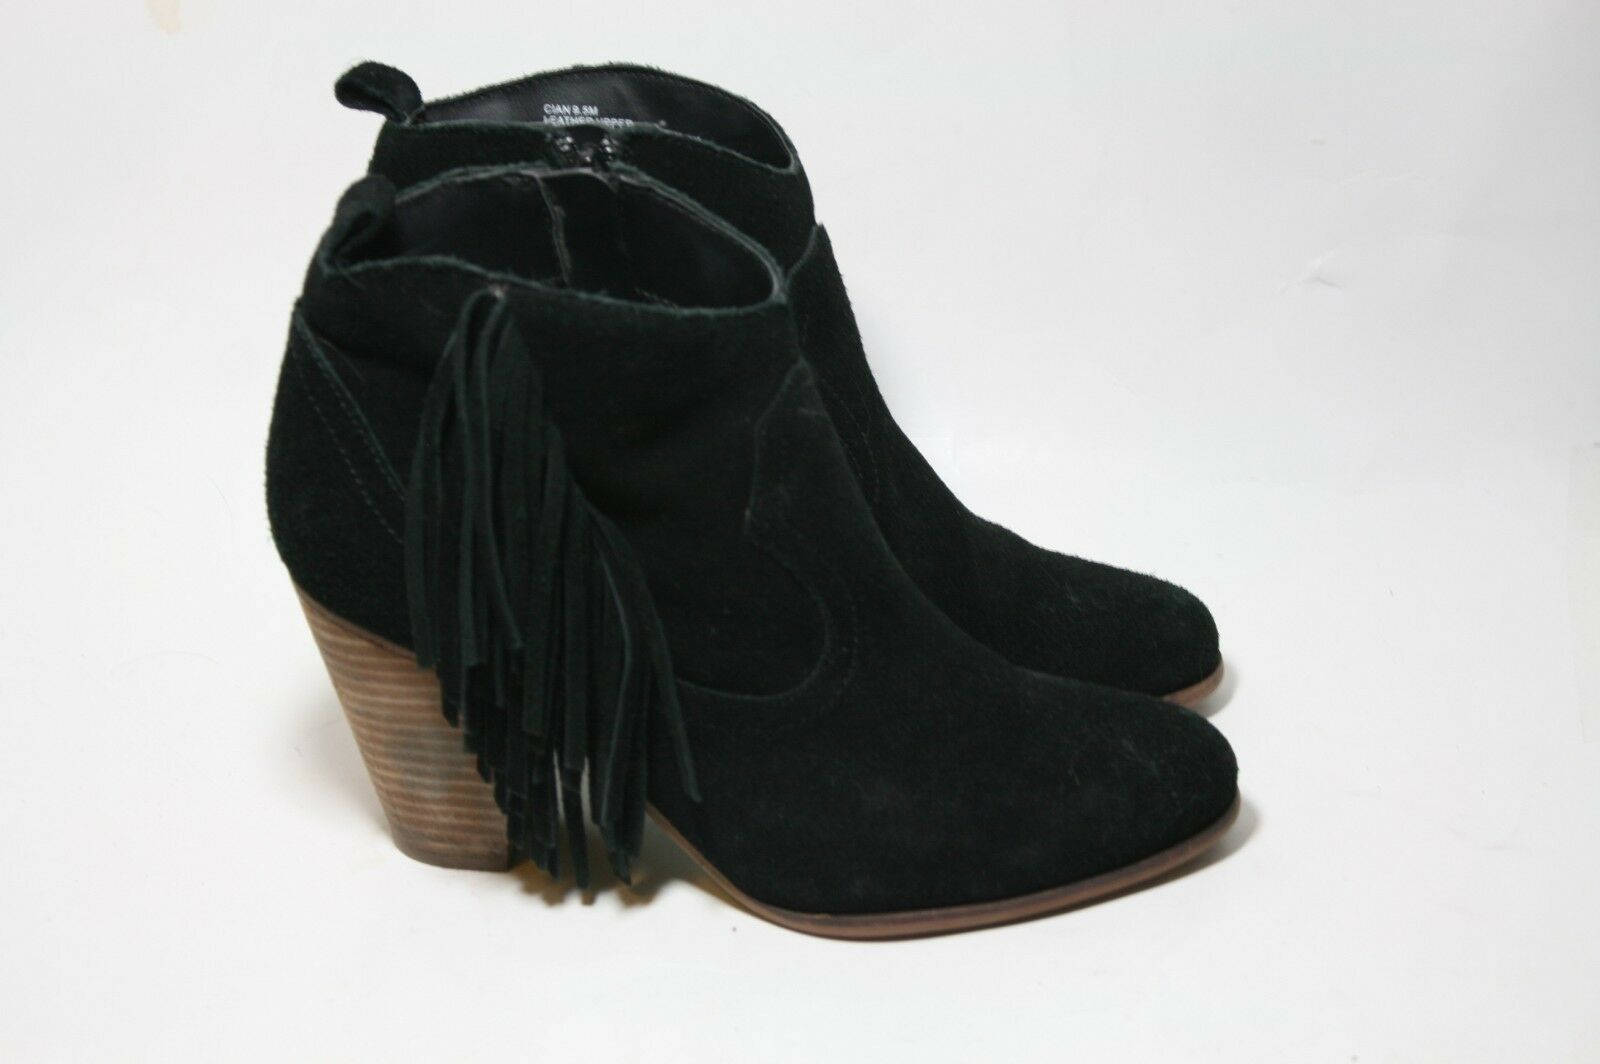 STEVE MADDEN SHOES CIAN CIAN CIAN FRINGE BOOTIES BLACK SUEDE ANKLE BOOTS 9.5  129 f88c5c